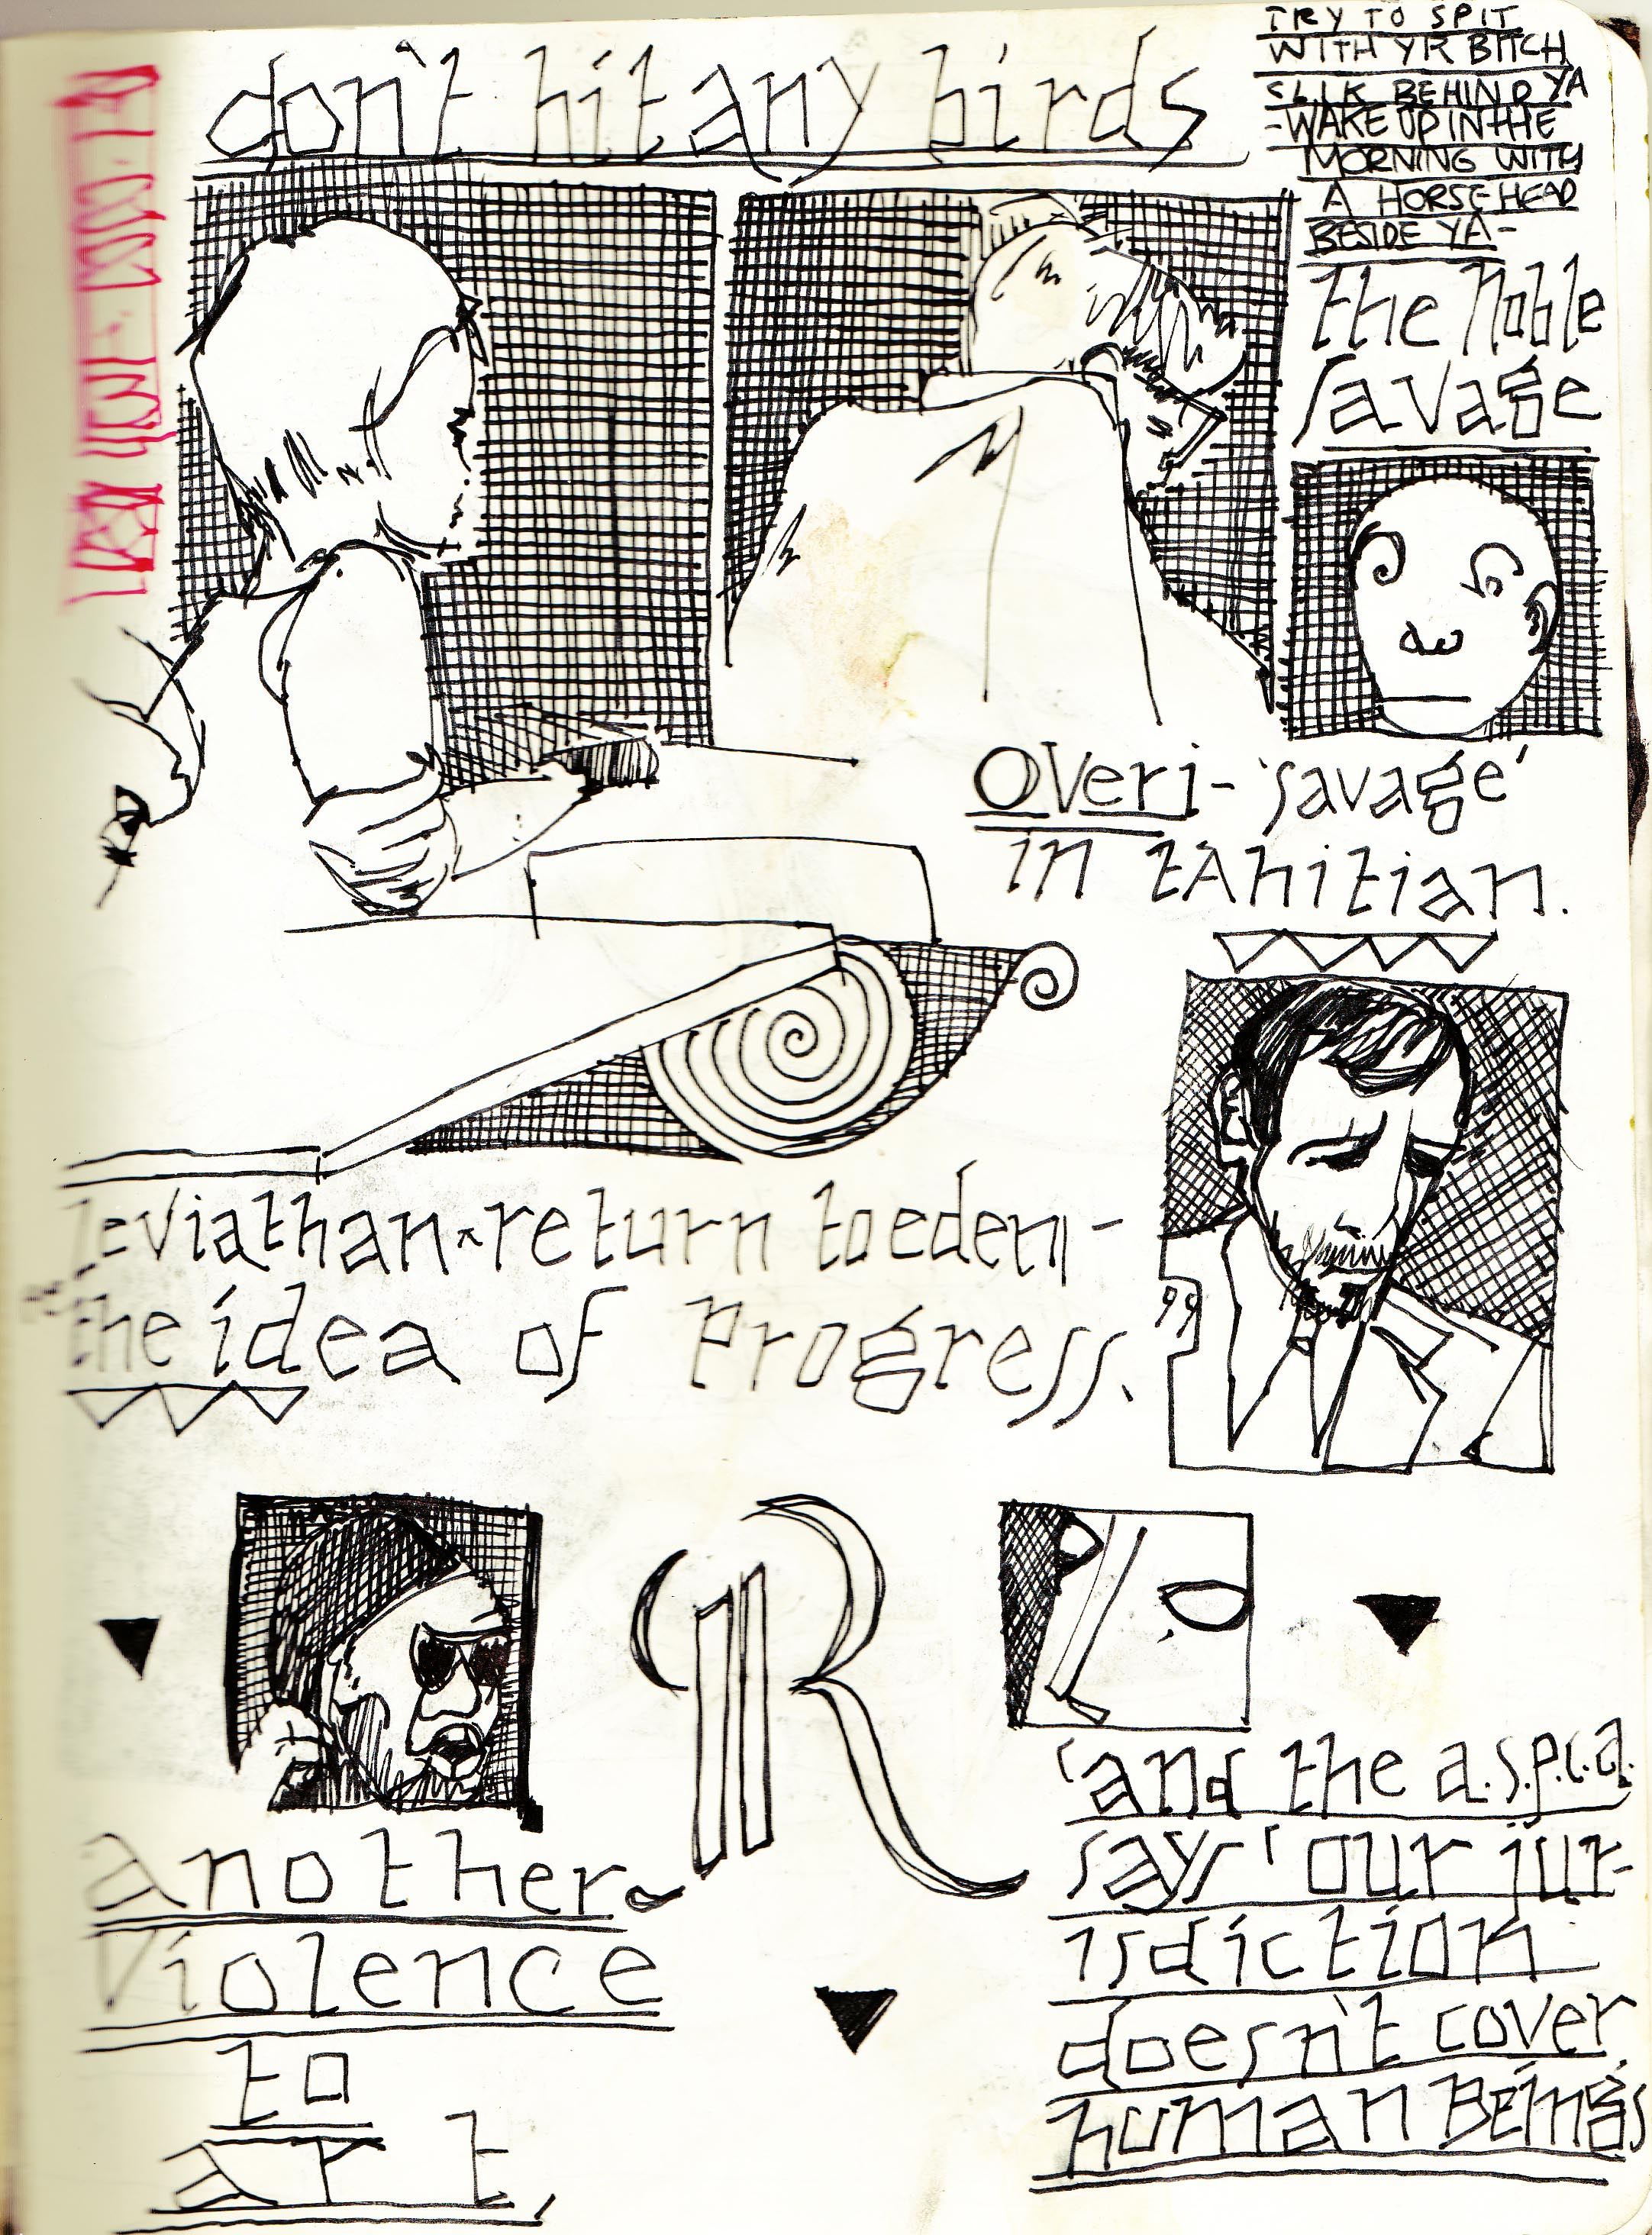 Sketchbook Journal #12: (RE)Immolation in Pagan Winter: page 105